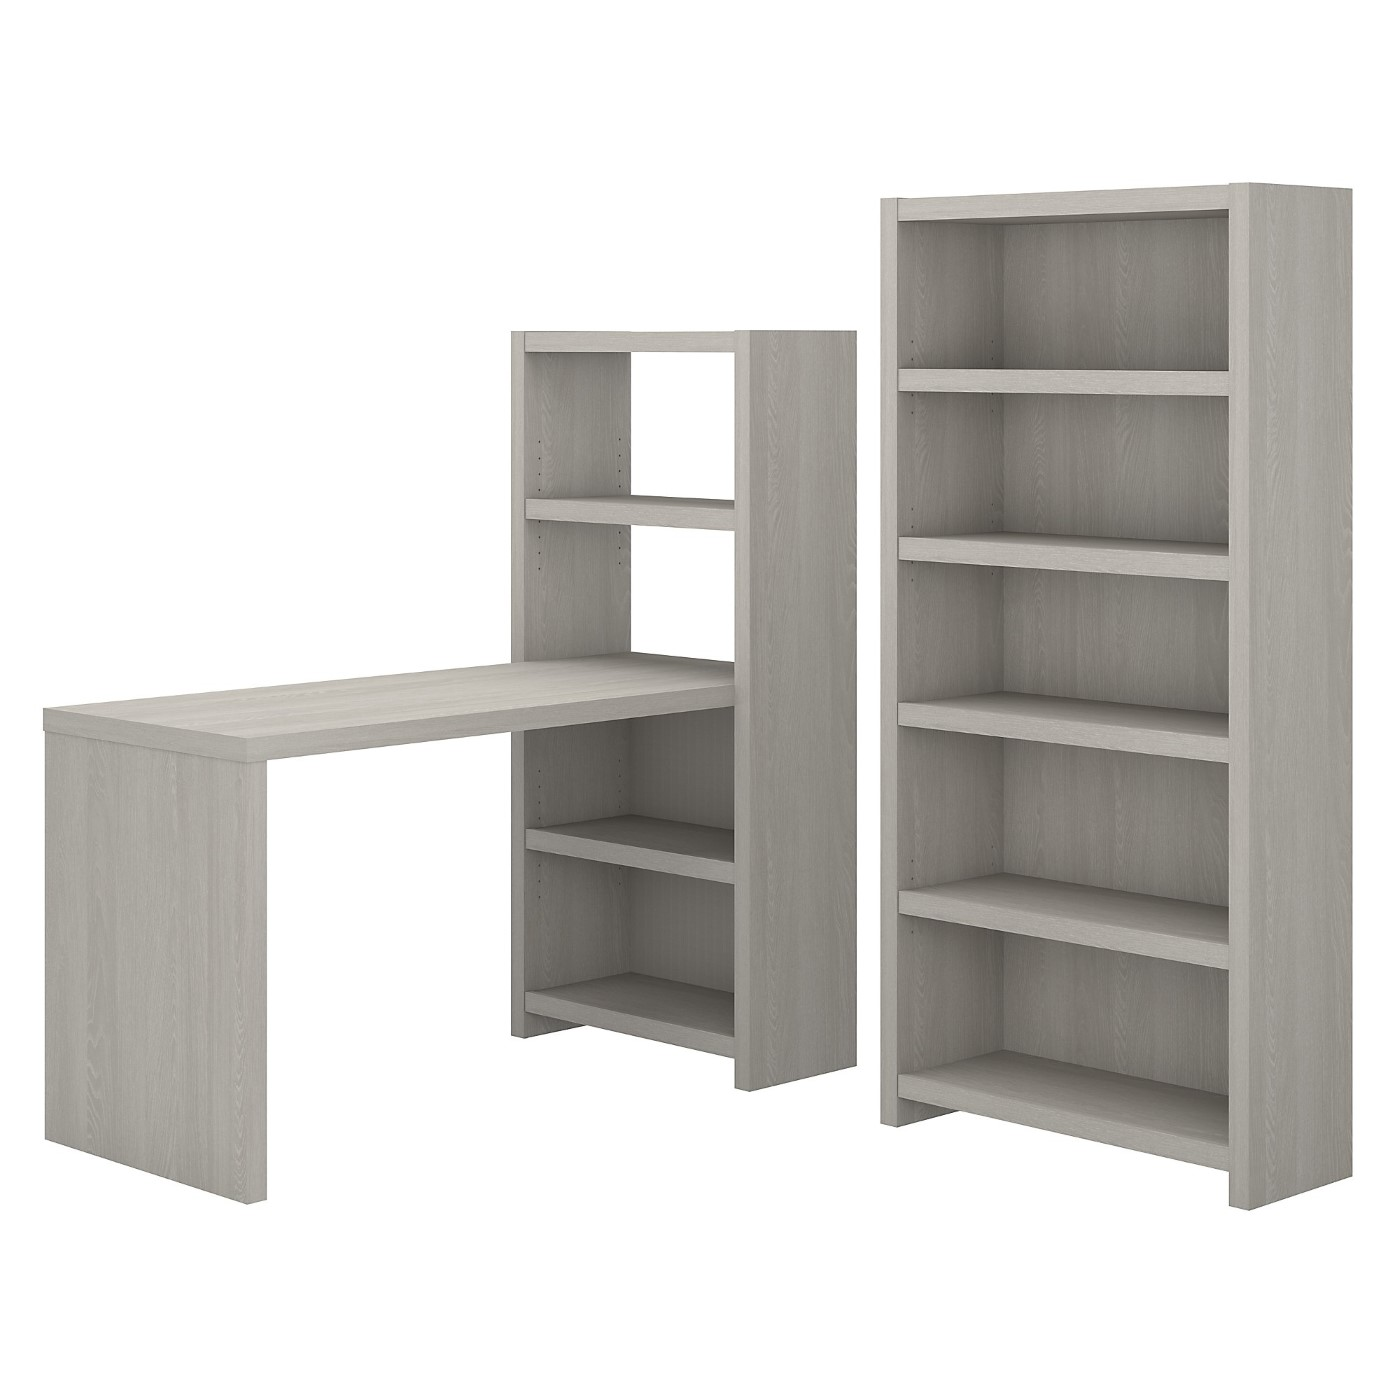 The kathy ireland� Echo Bookcase Desk with Storage is Sustainable Eco Friendly Furniture. Includes Free Shipping! 30H x 72L x 72W.